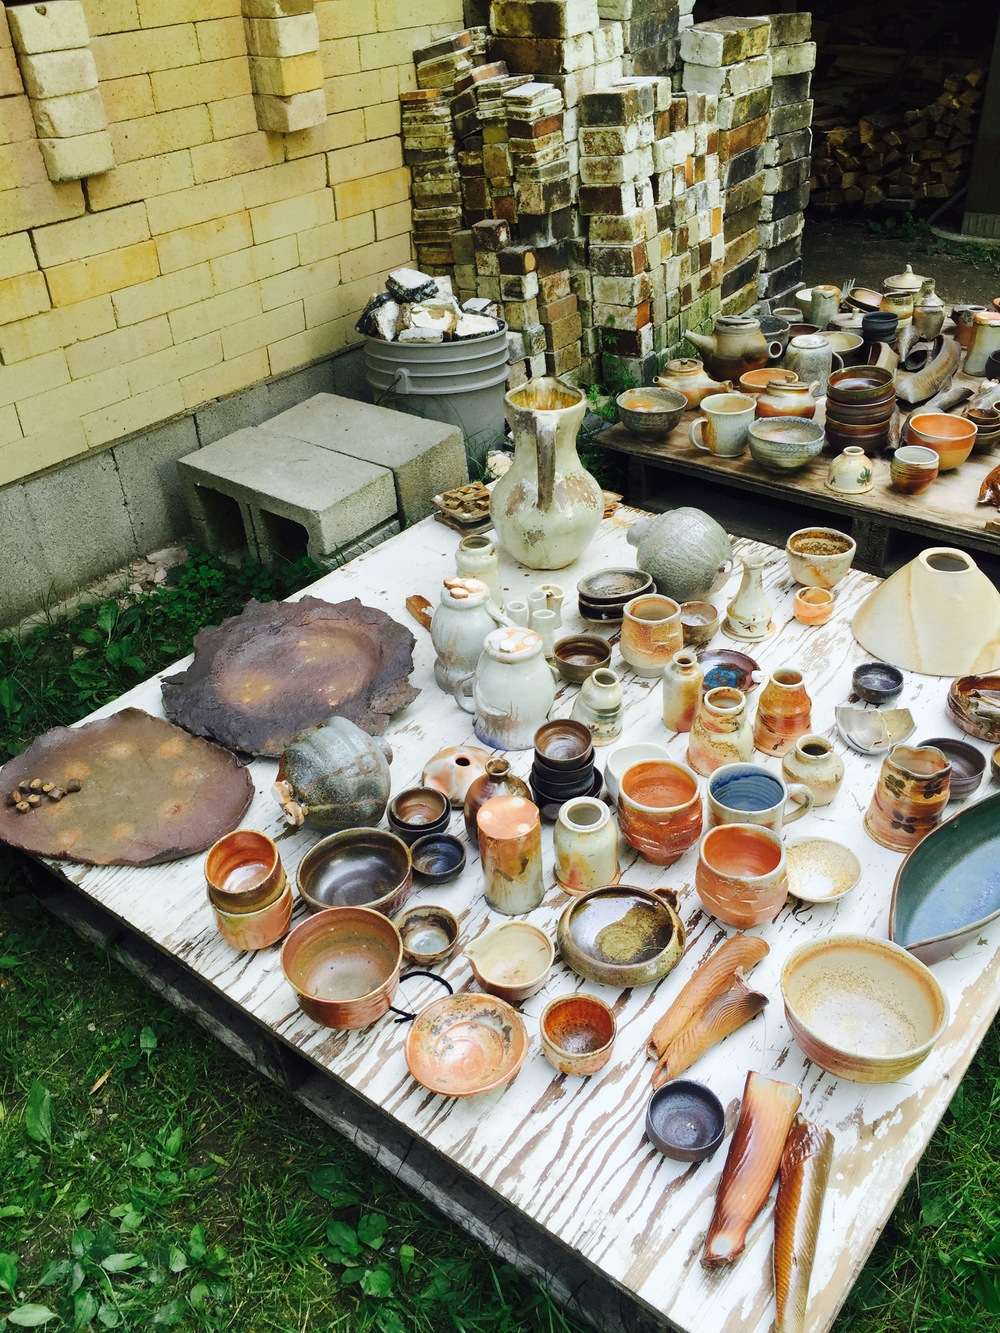 I missed the unloading of Tony Moore's wood kiln. However, when I arrived that Sunday, there was still lots of beautiful work for me to see from the firing. I was excited to discuss the results with Tony.